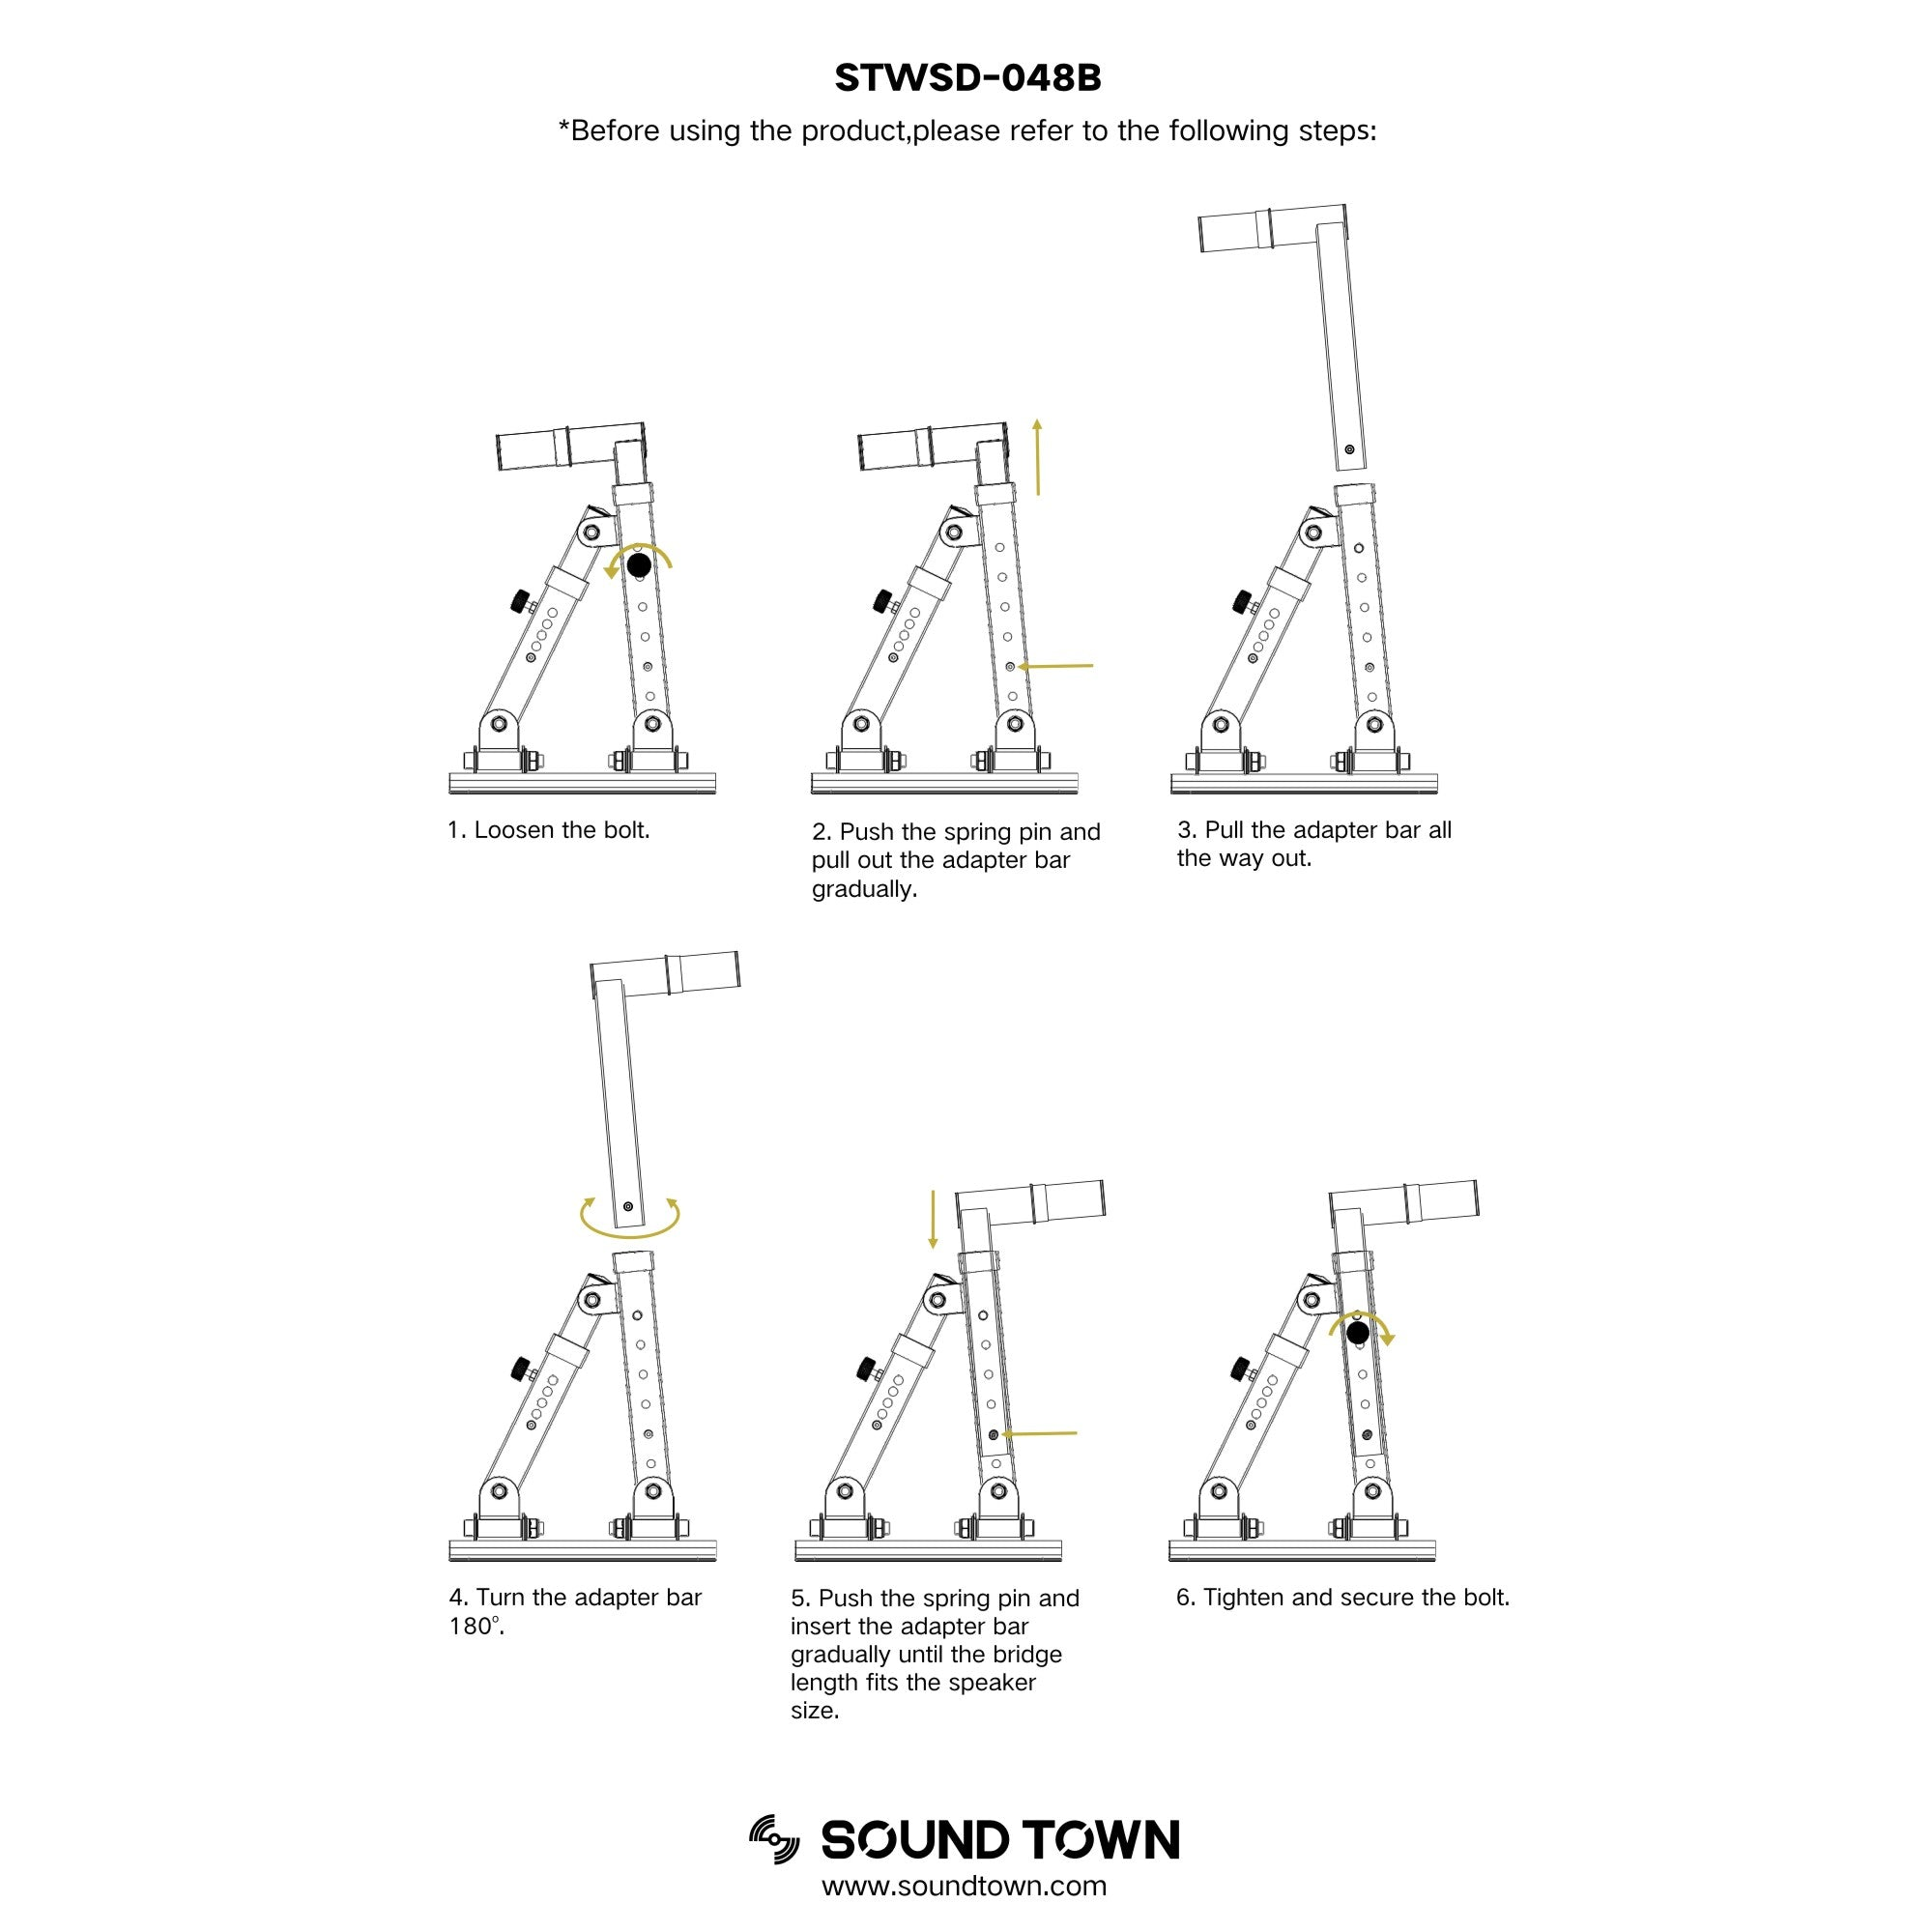 Sound Town STWSD-048B Pair of Adjustable Wall Mount Speaker Brackets with 180-degree Swivel - User Manual, How to Use, Connection Instructions